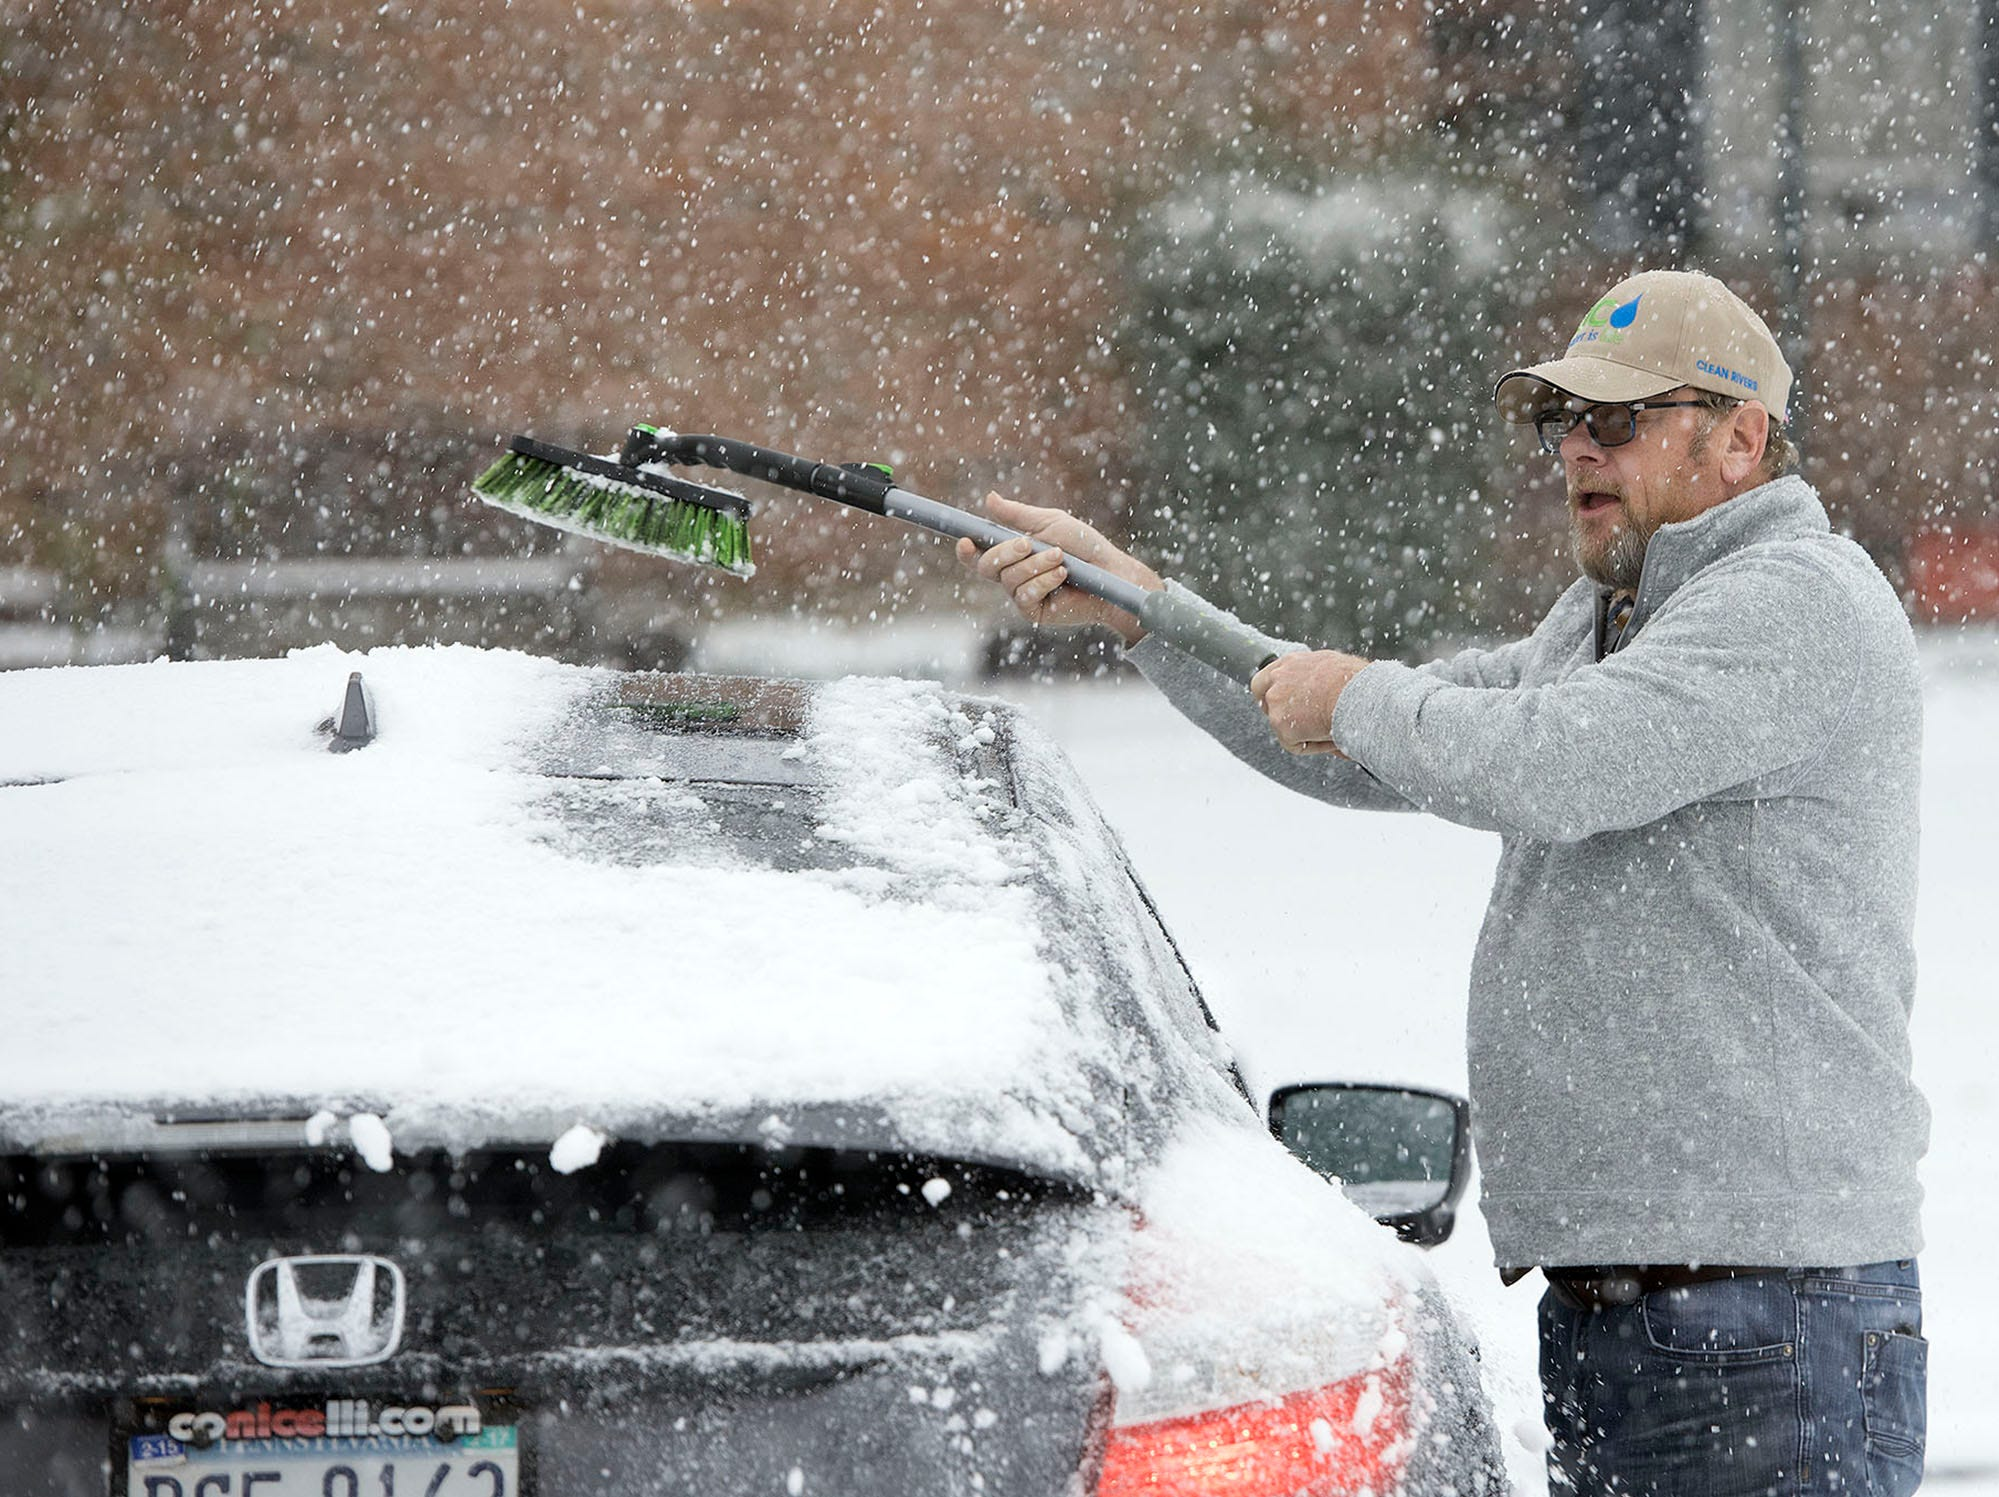 Garry Brennan clears off his car after lunch at a local restaurant in Chambersburg. A winter storm hit Franklin County on Thursday morning, November 15, 2018.